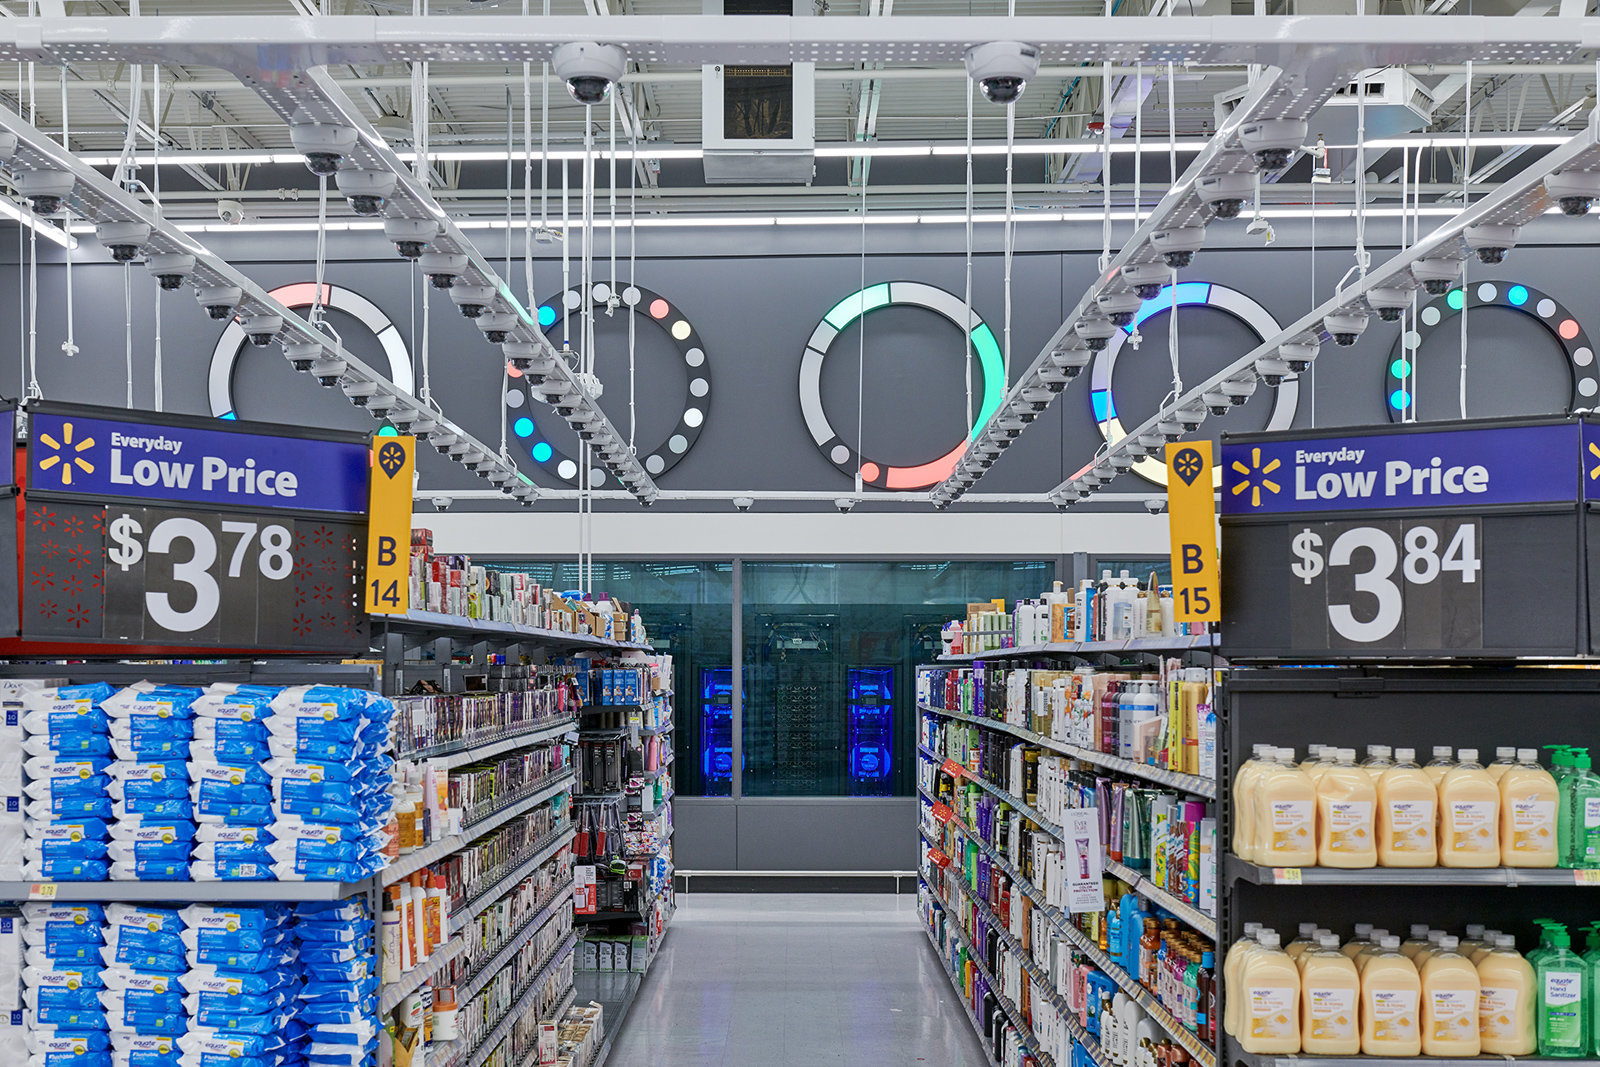 There are AI-enabled cameras above almost all the products in the new concept store. Image via Walmart